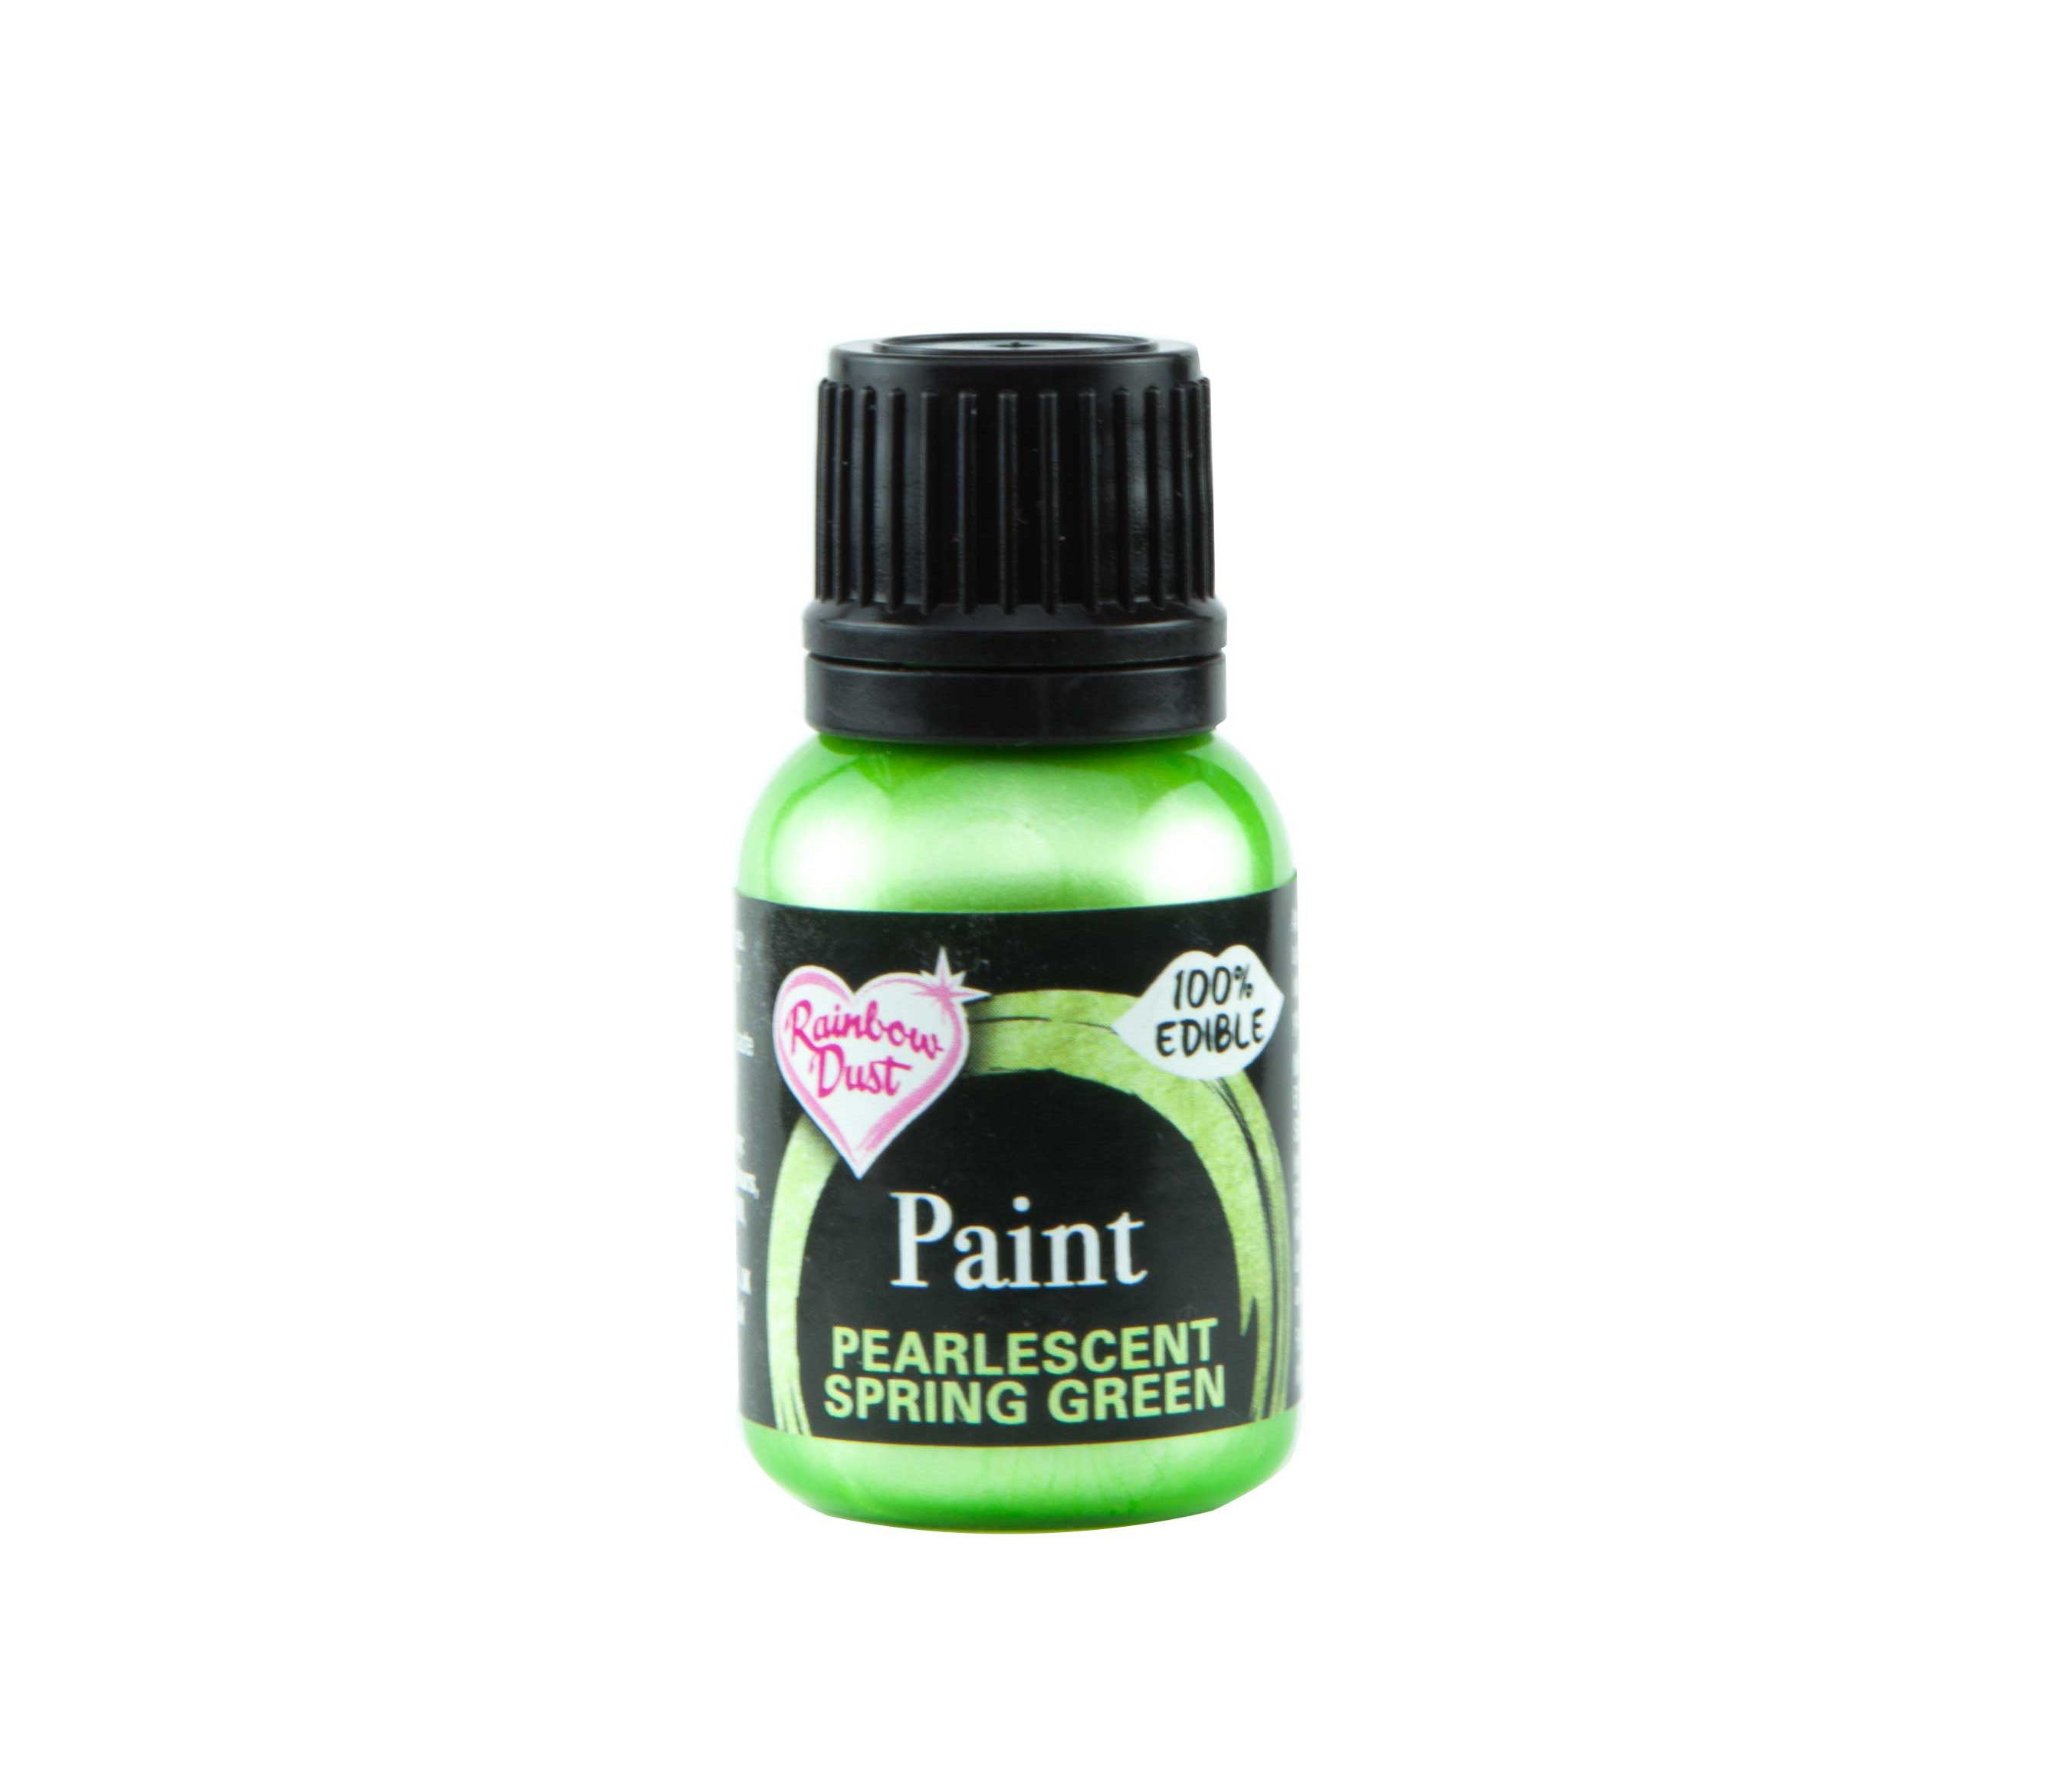 Edible Paints Metallic Spring Green 25g